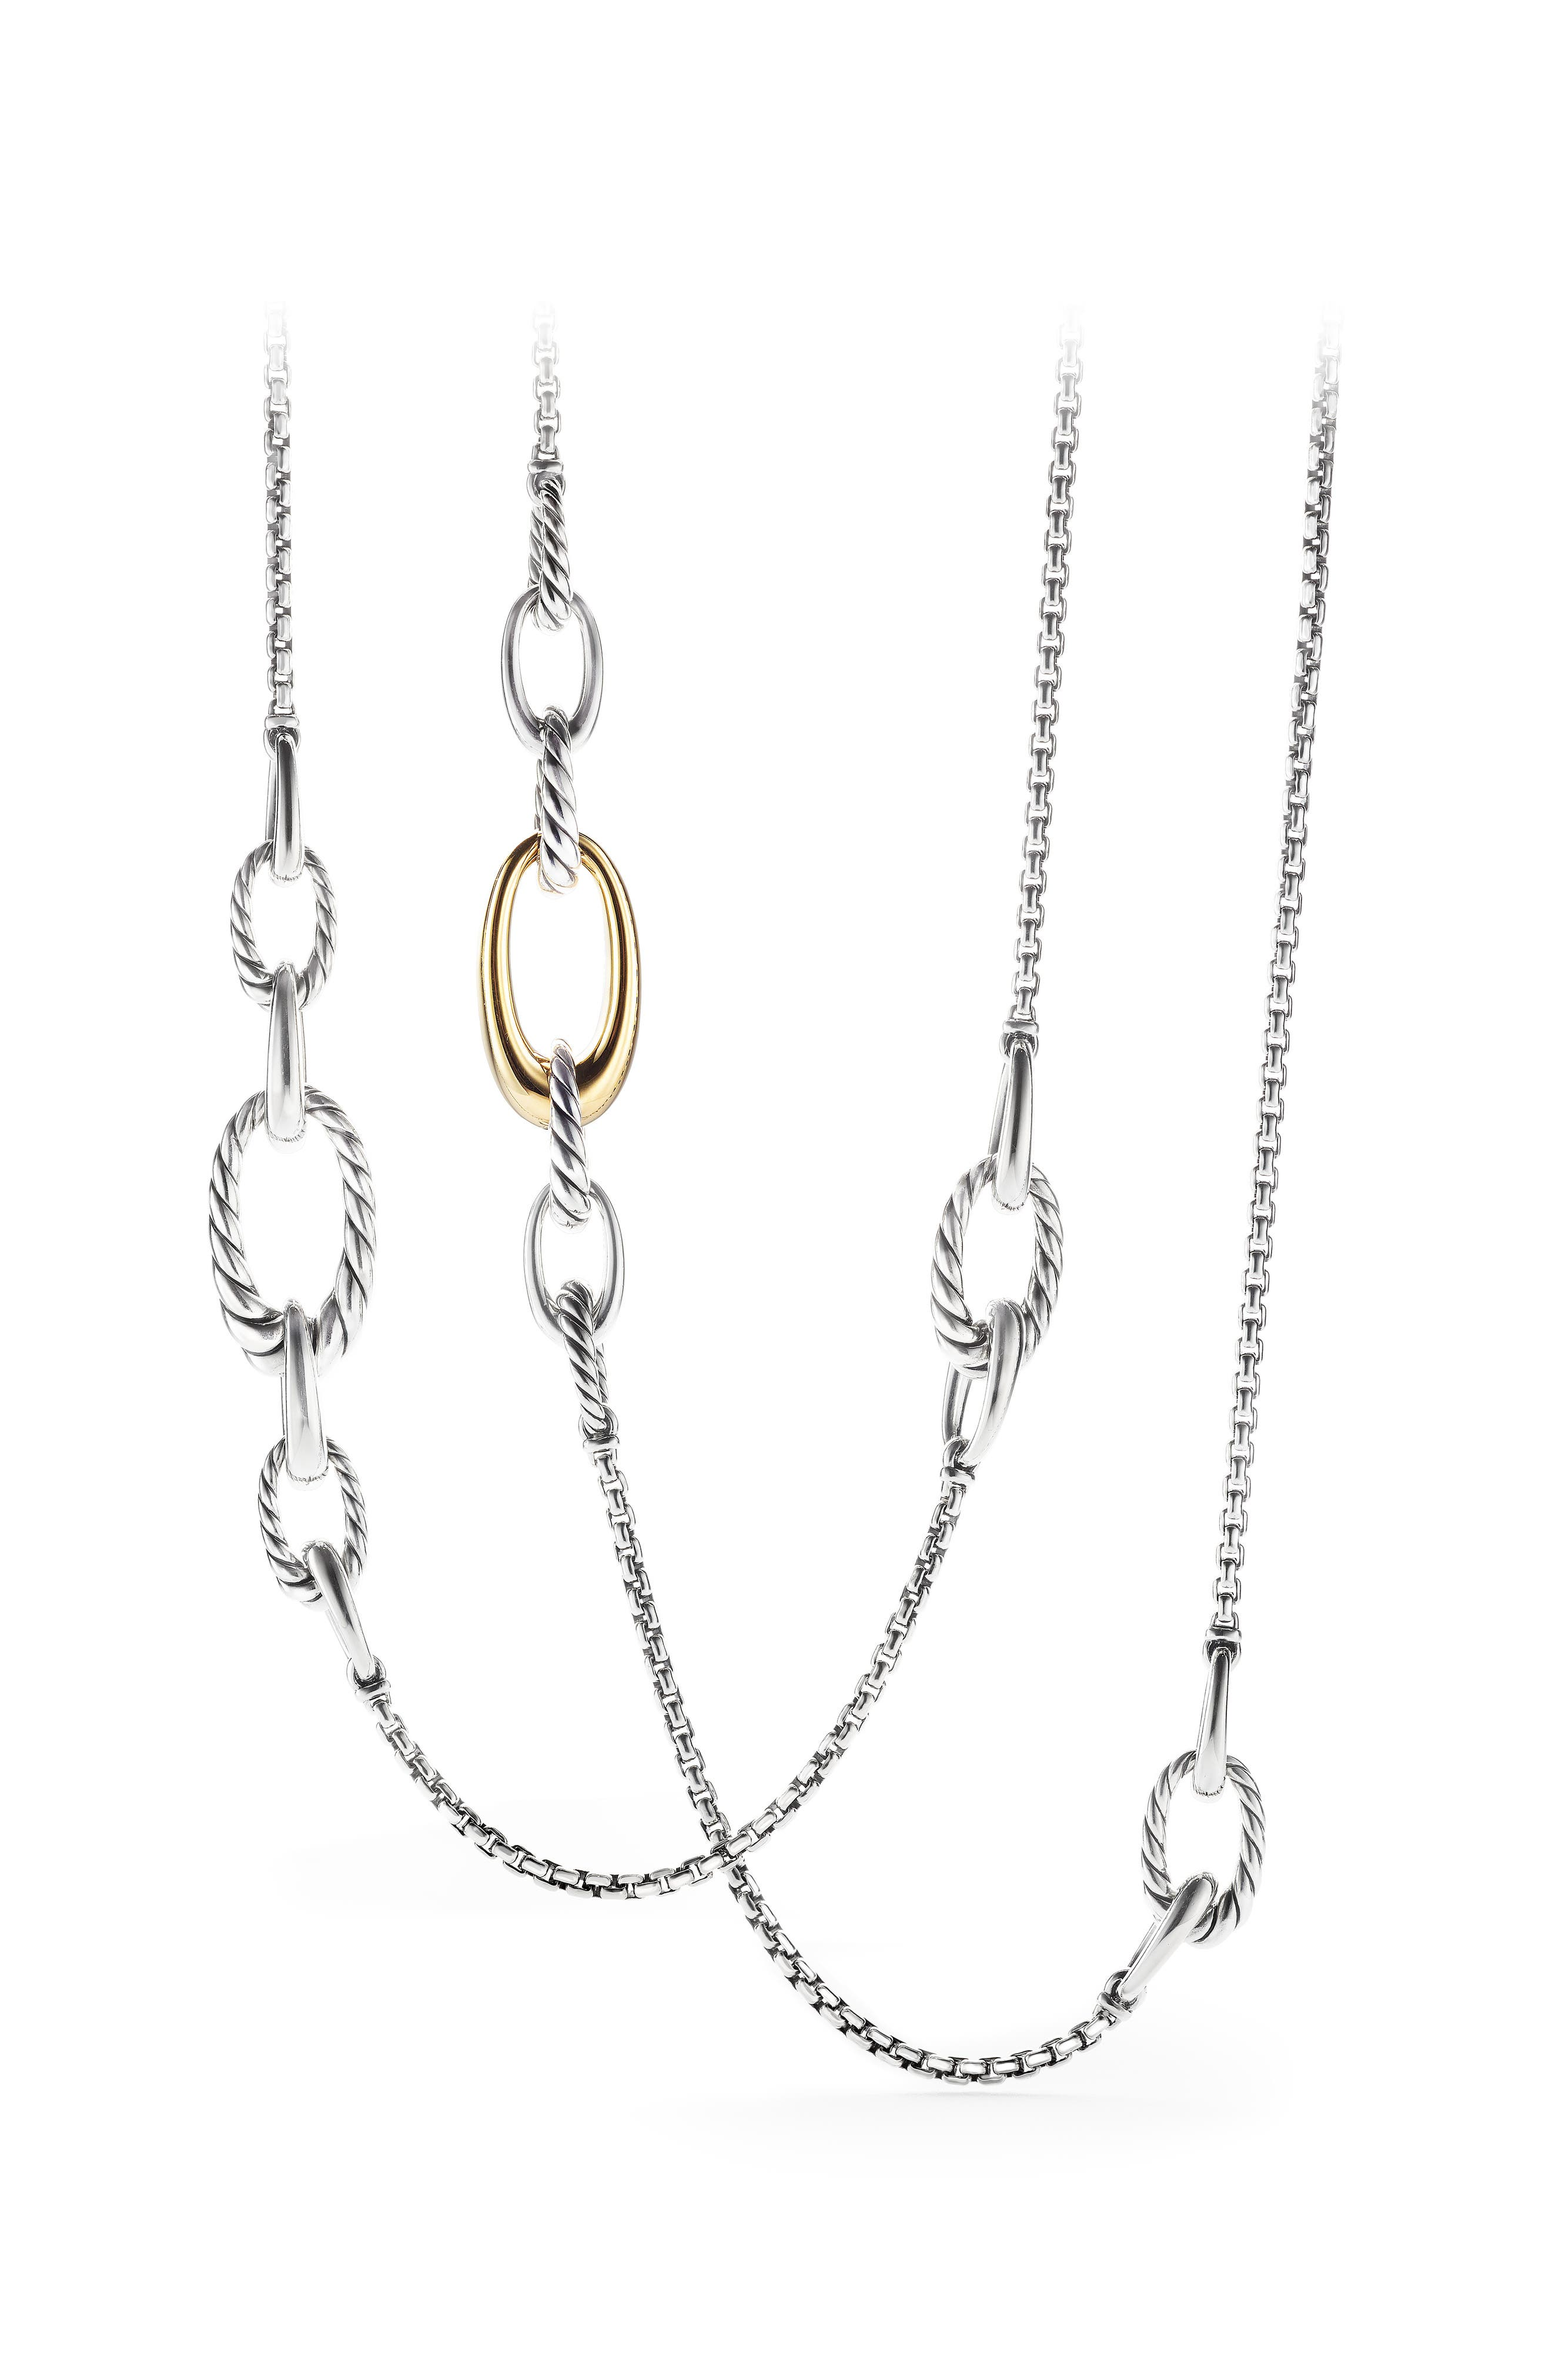 Pure Form Graduated Chain Station Necklace,                             Alternate thumbnail 3, color,                             GOLD/ SILVER